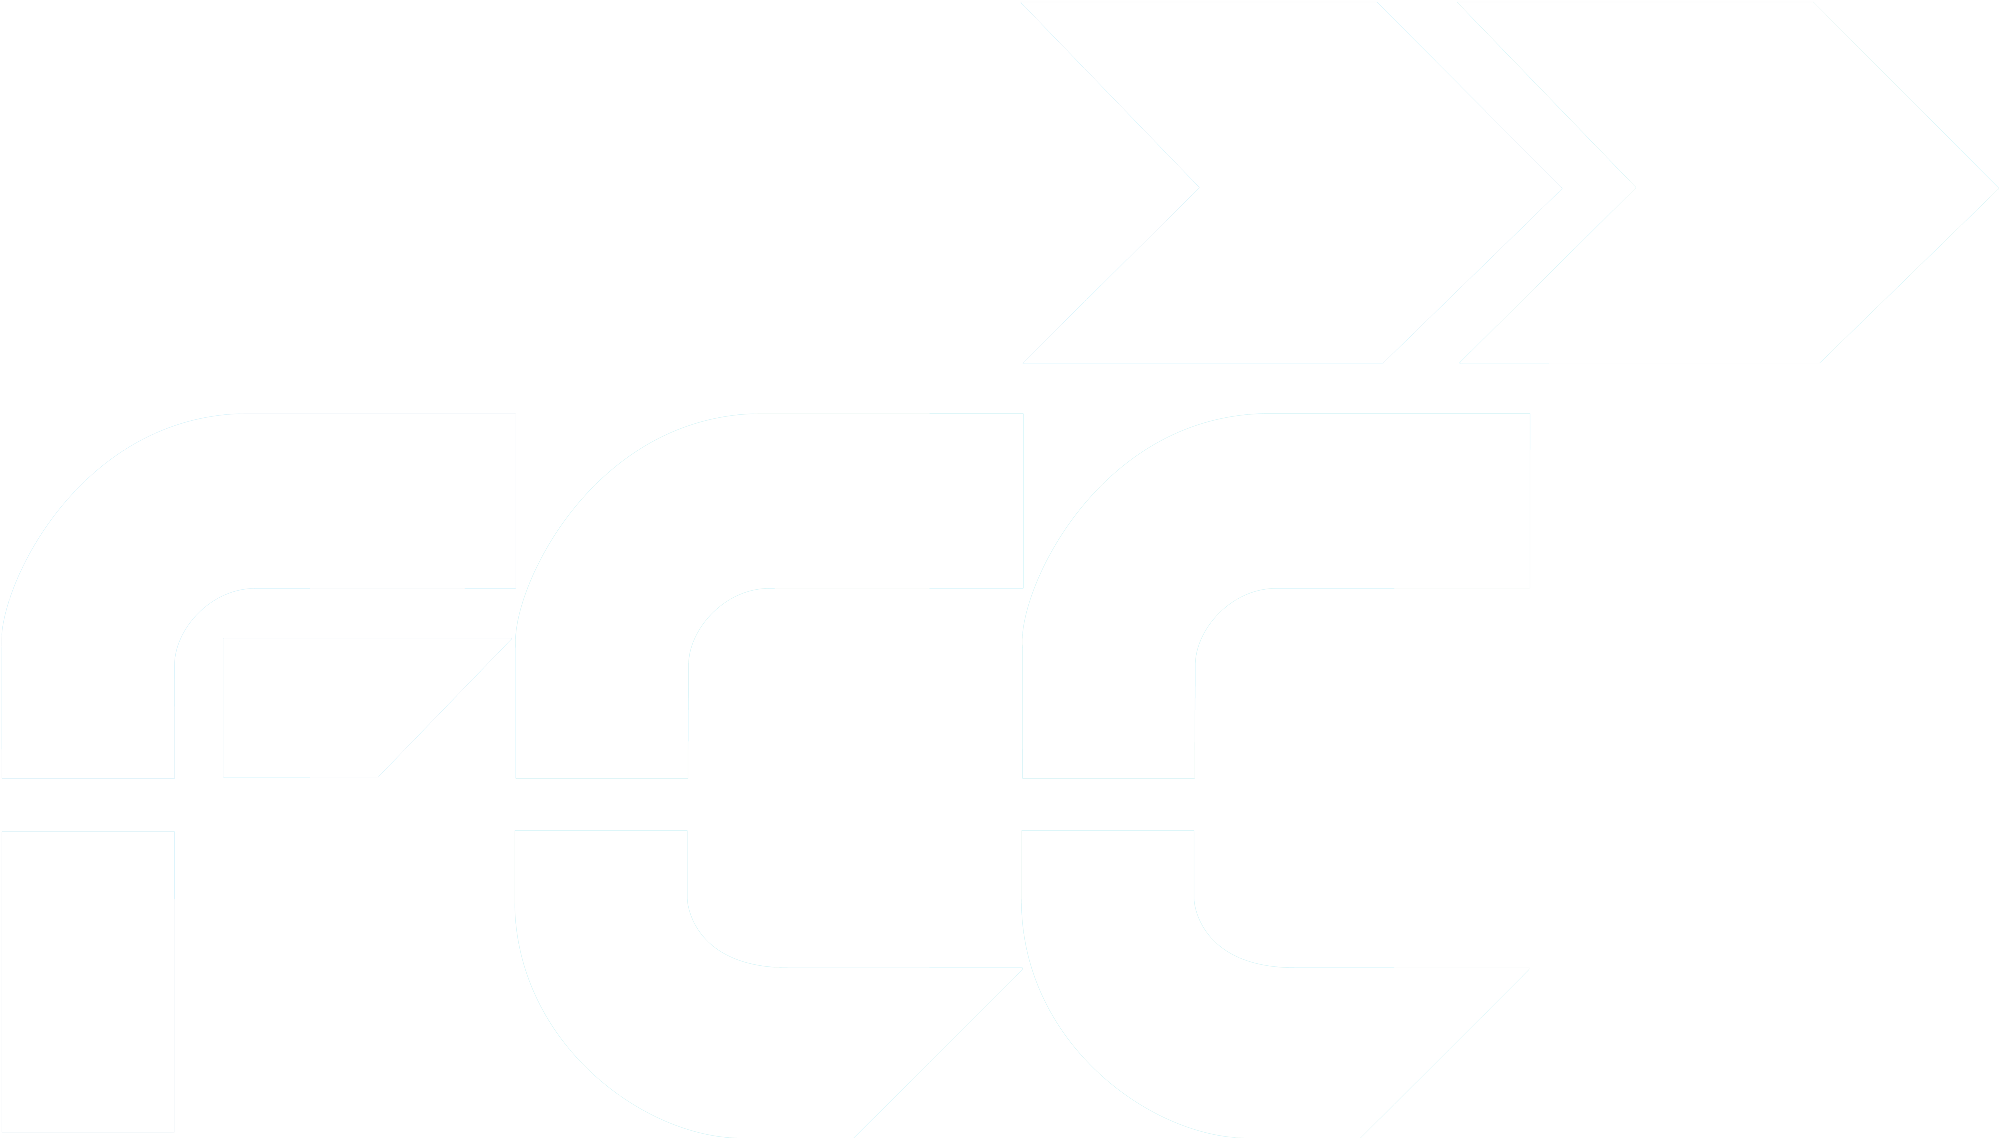 6. FCC-white.png